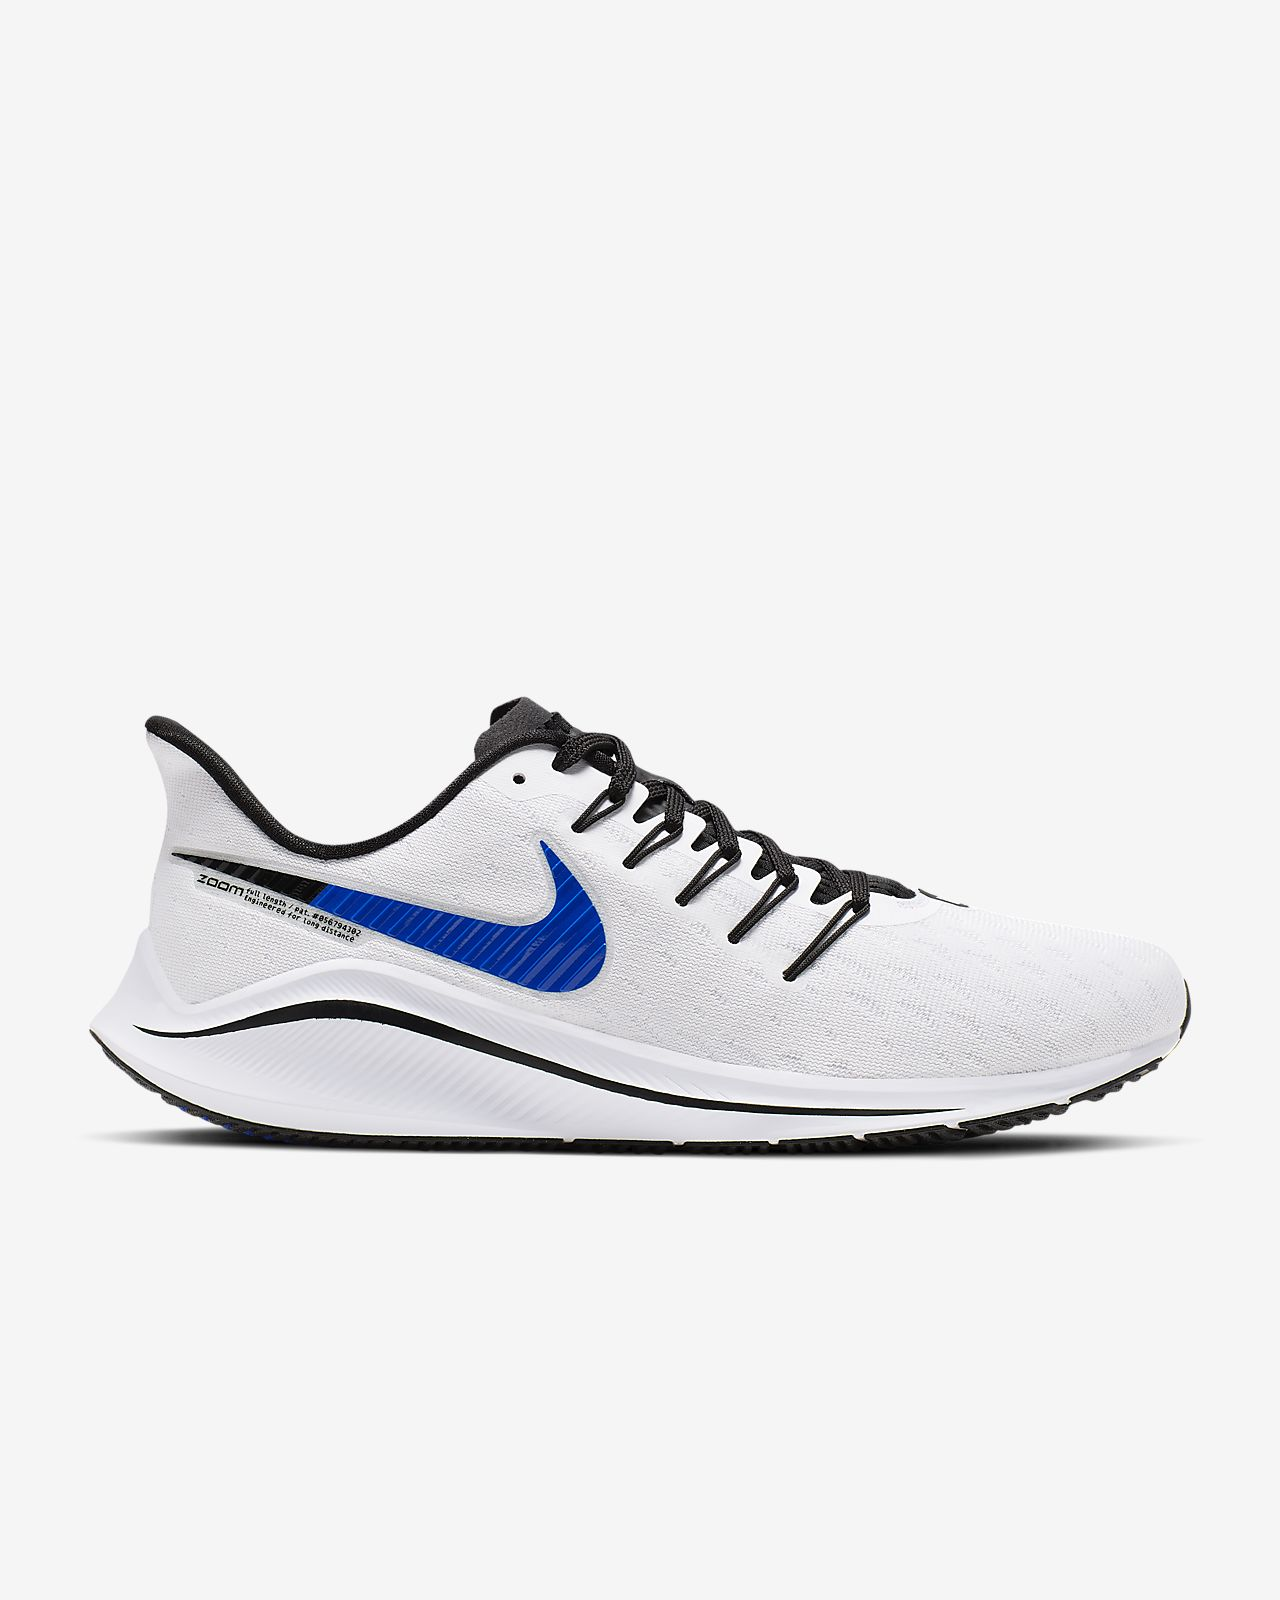 Nike Men's Air Zoom Vomero 14 Running Shoe Wide 4E